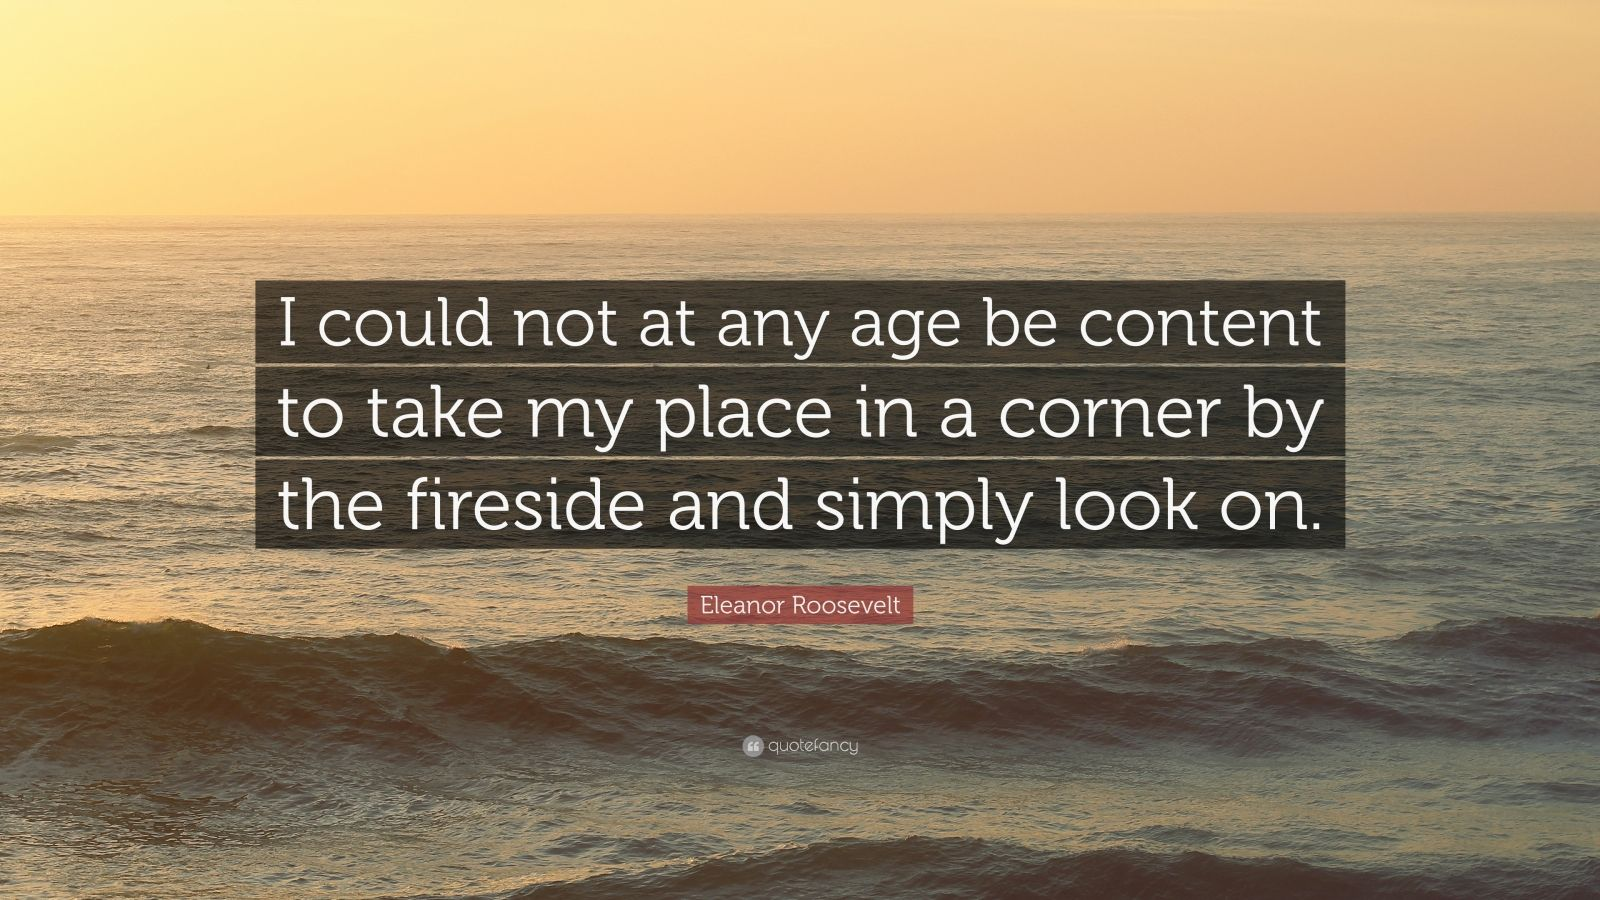 """Eleanor Roosevelt Quote: """"I could not at any age be content to take my place in a corner by the fireside and simply look on."""""""